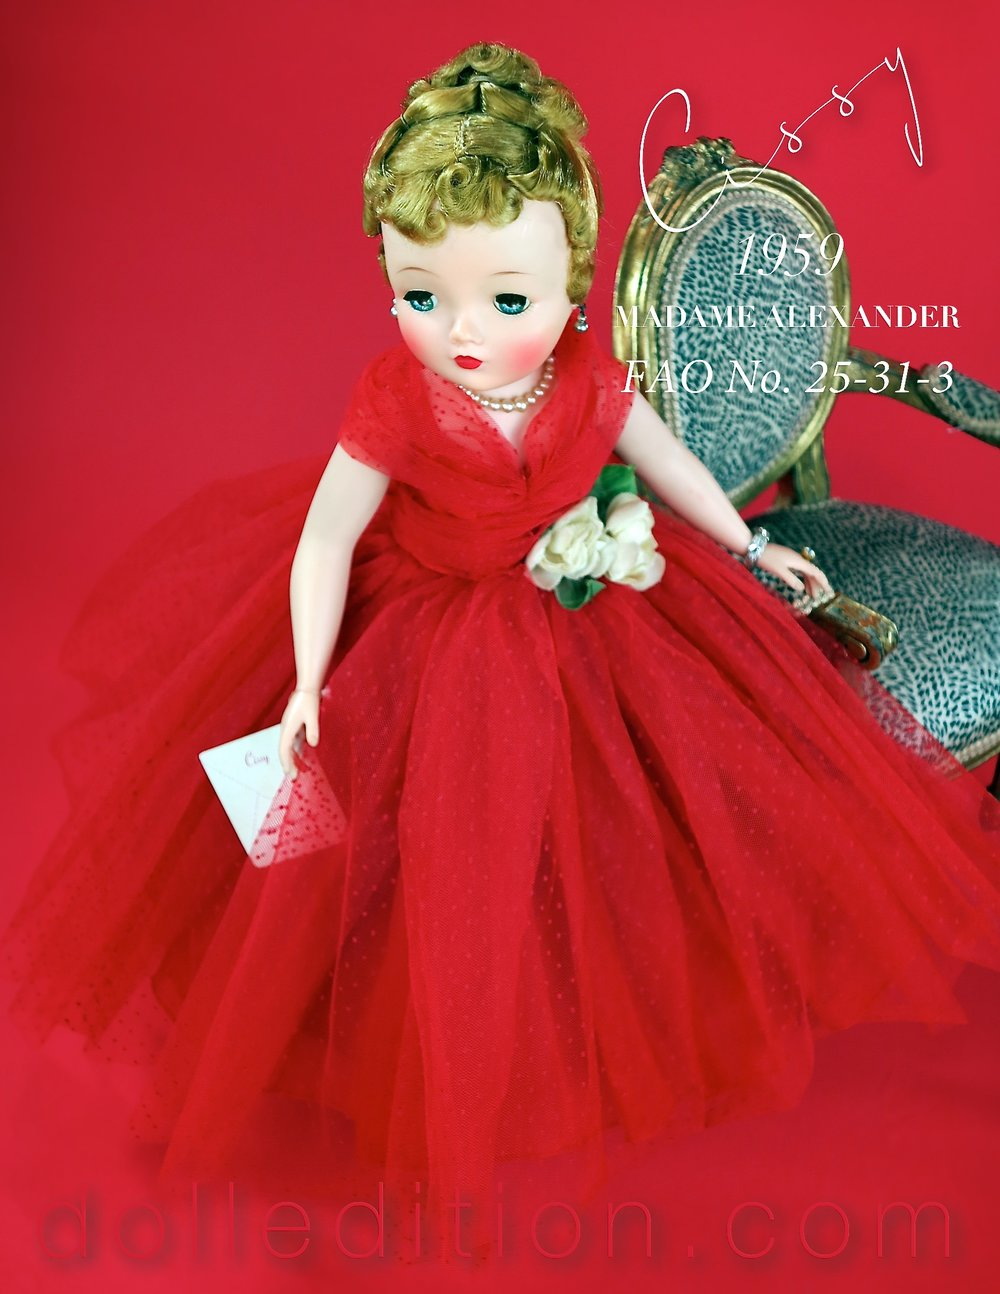 Appearing as No. 25-31-3 in the 1959 FAO Schwarz catalog was this red 3/4 length swiss dotted tulle gown with a white rose corsage at the waist. A black and white photo in the Alexander Doll Company's catalog shows the same dress as No. 22-60, but as a variation in a pastel pink dotted swiss tulle.